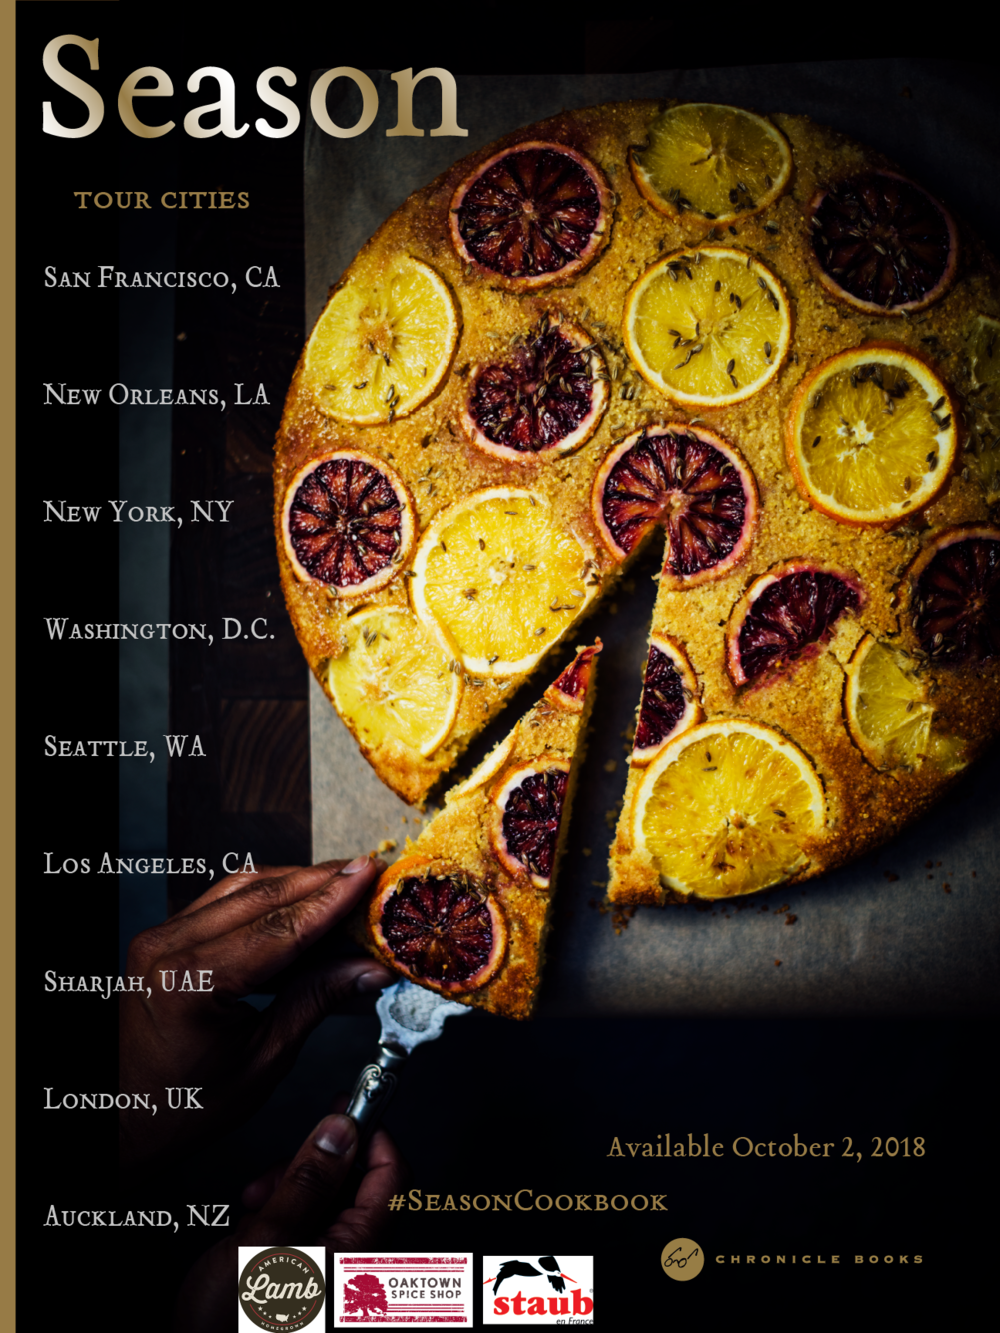 Season Cookbook Tour (Chronicle Books Oct 2, 2018)